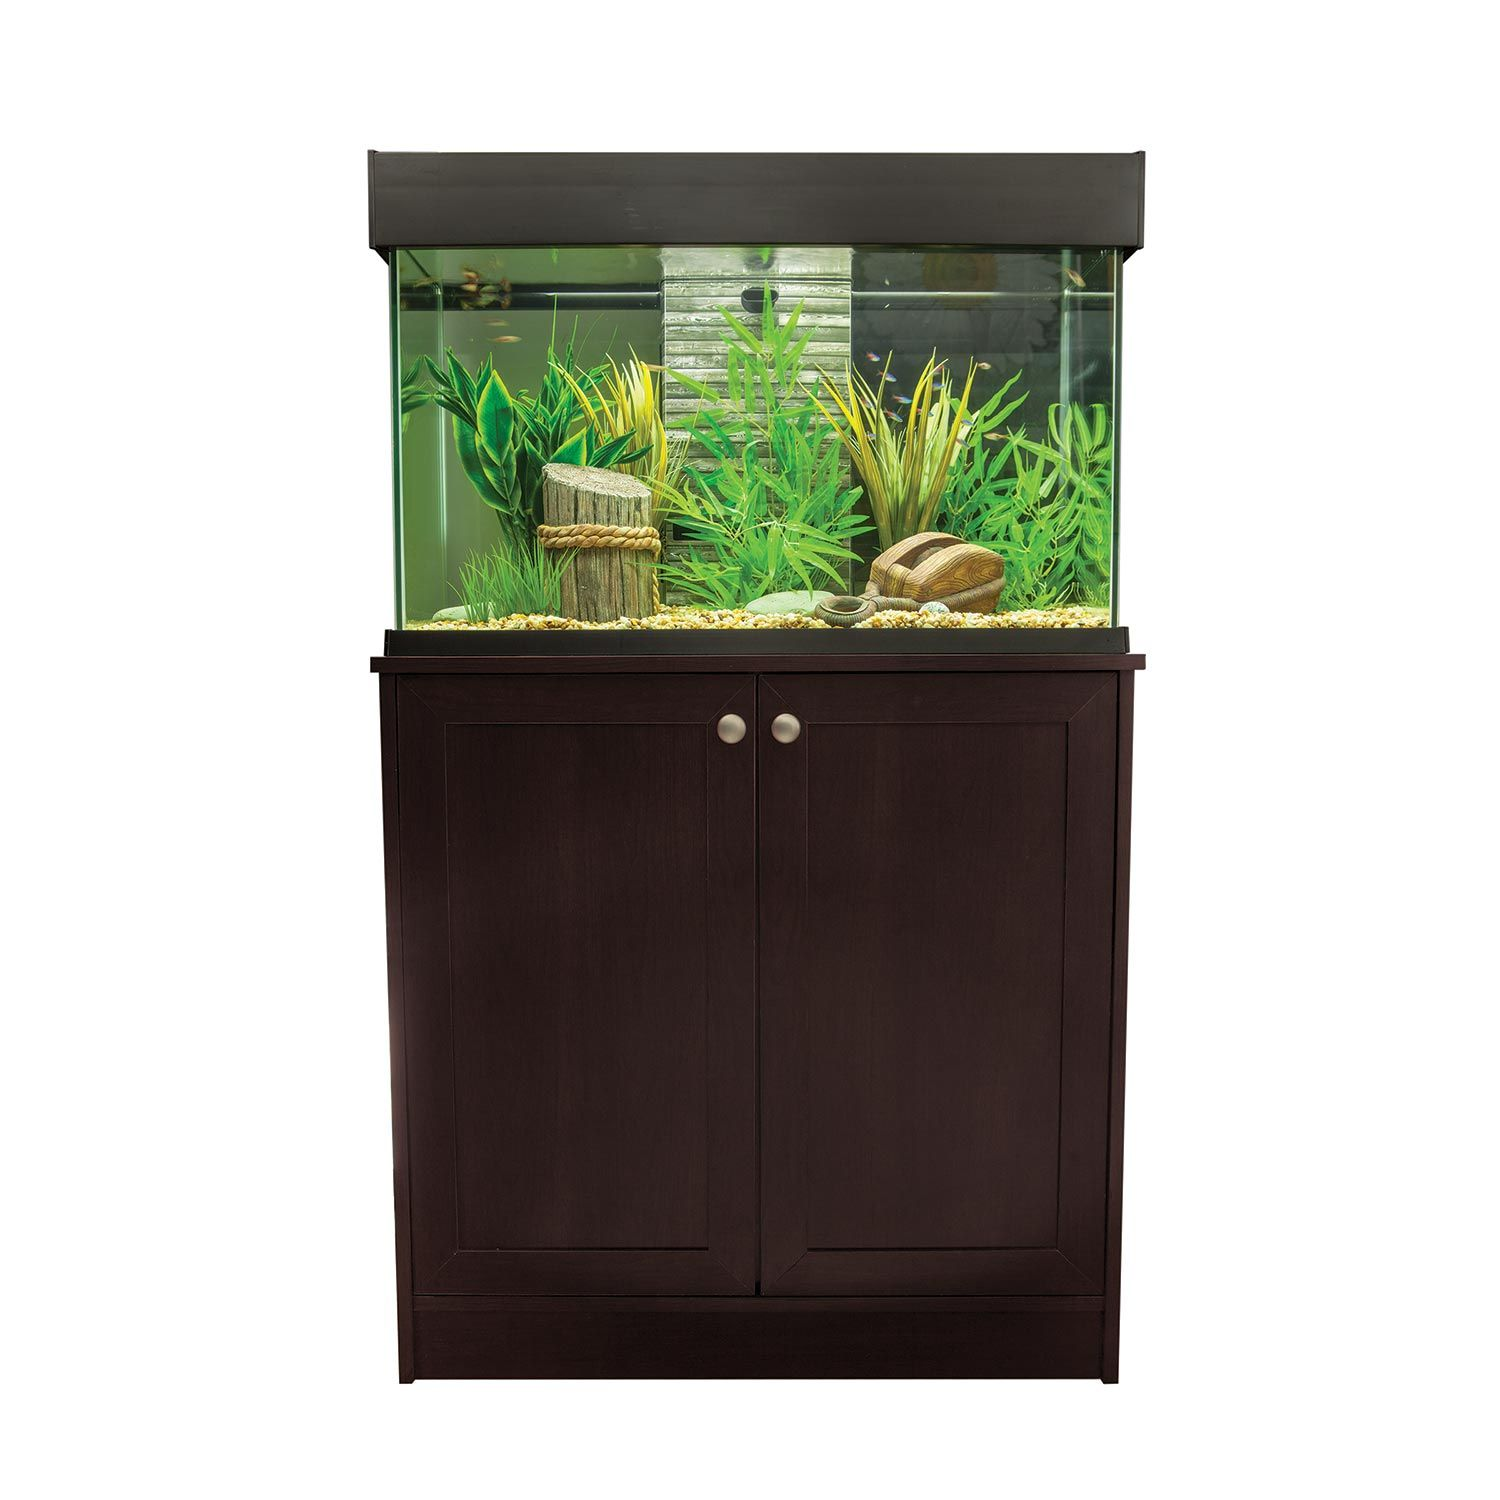 Fluval Accent Aquarium and Combo in Espresso. I